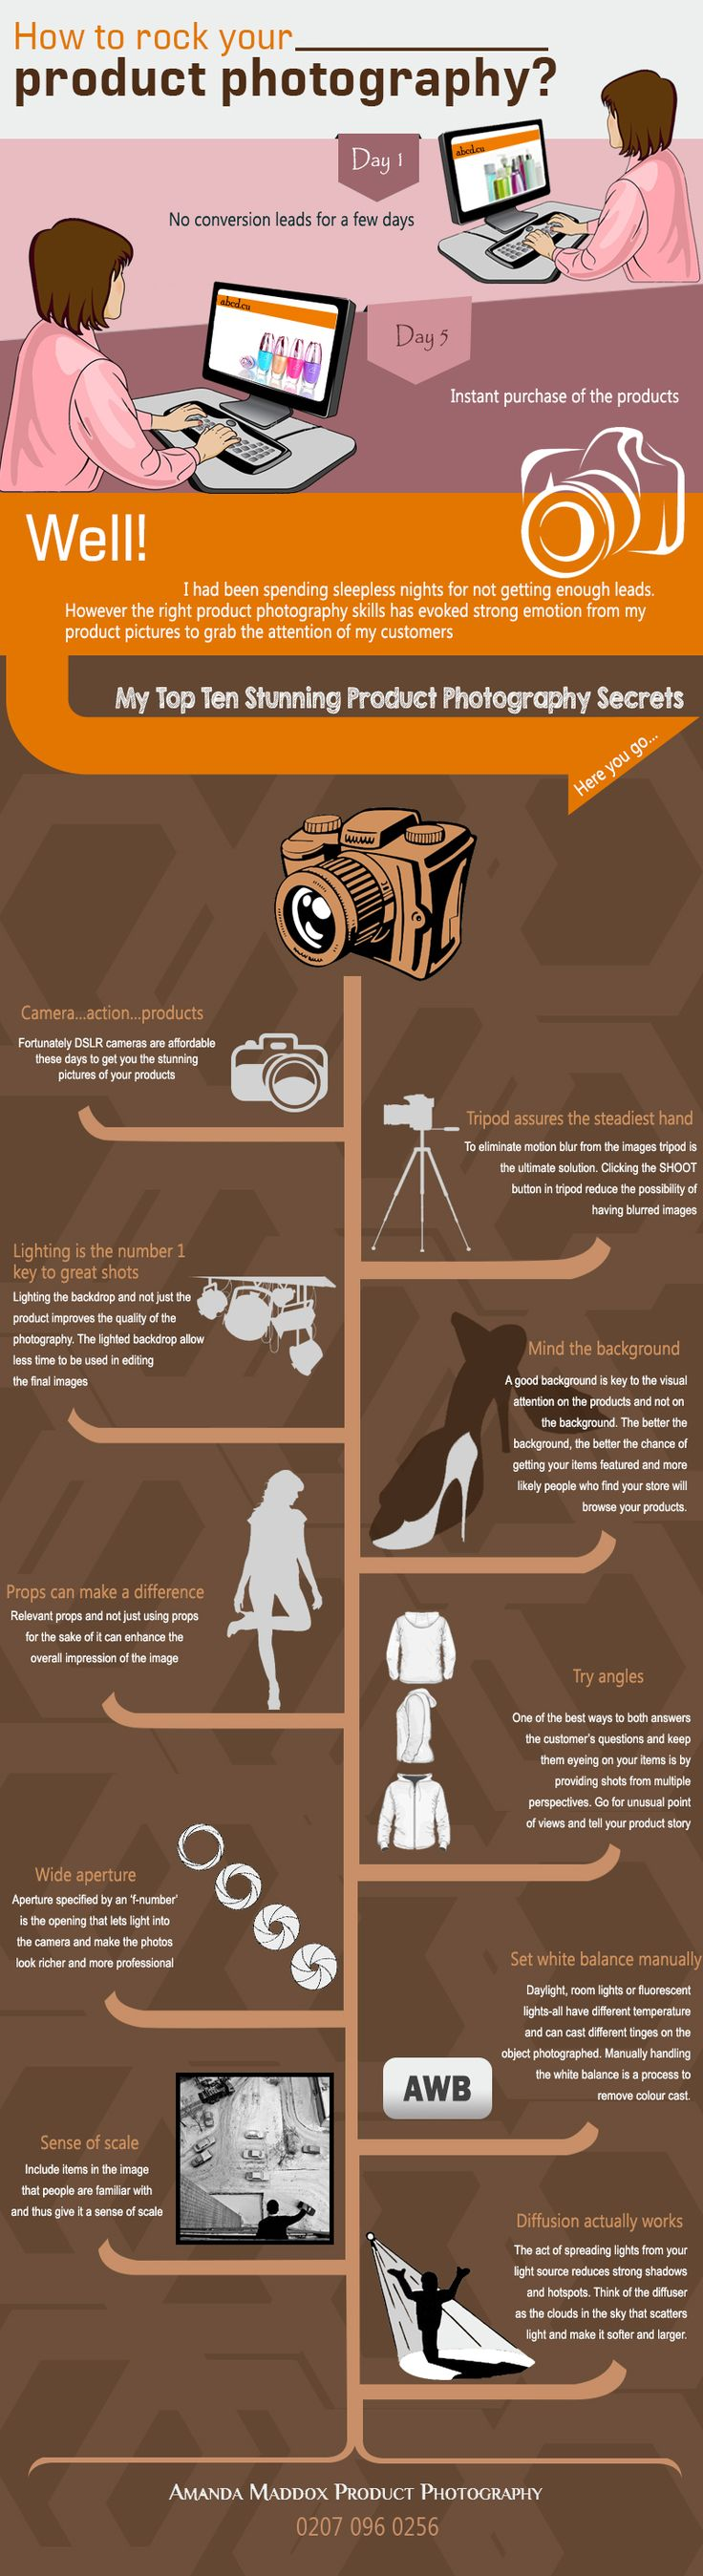 How To Rock Your Product Photography?   #Infographic #Photography #HowTo